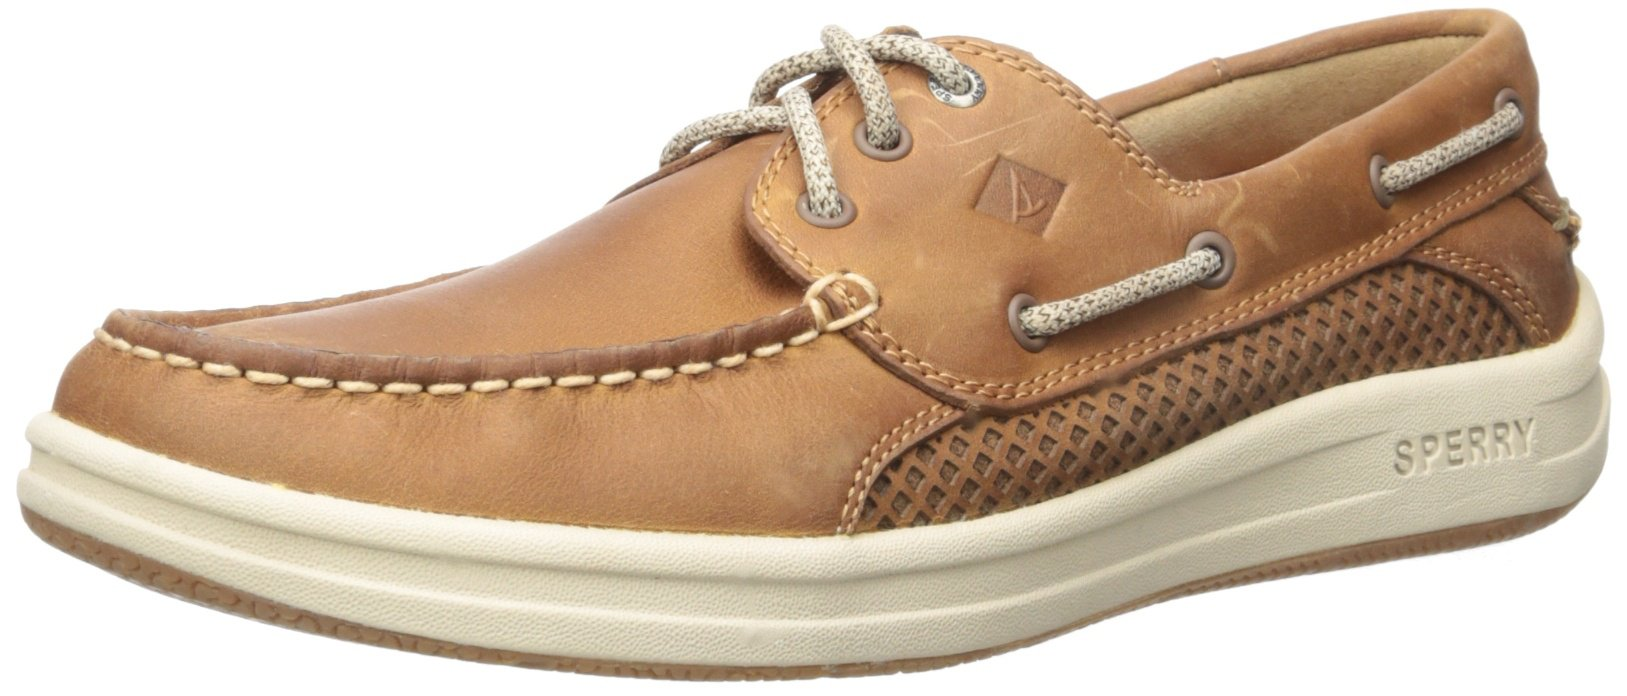 Sperry Top-Sider Men's Gamefish 3-Eye Boat Shoe, Dark Tan, 10 M US